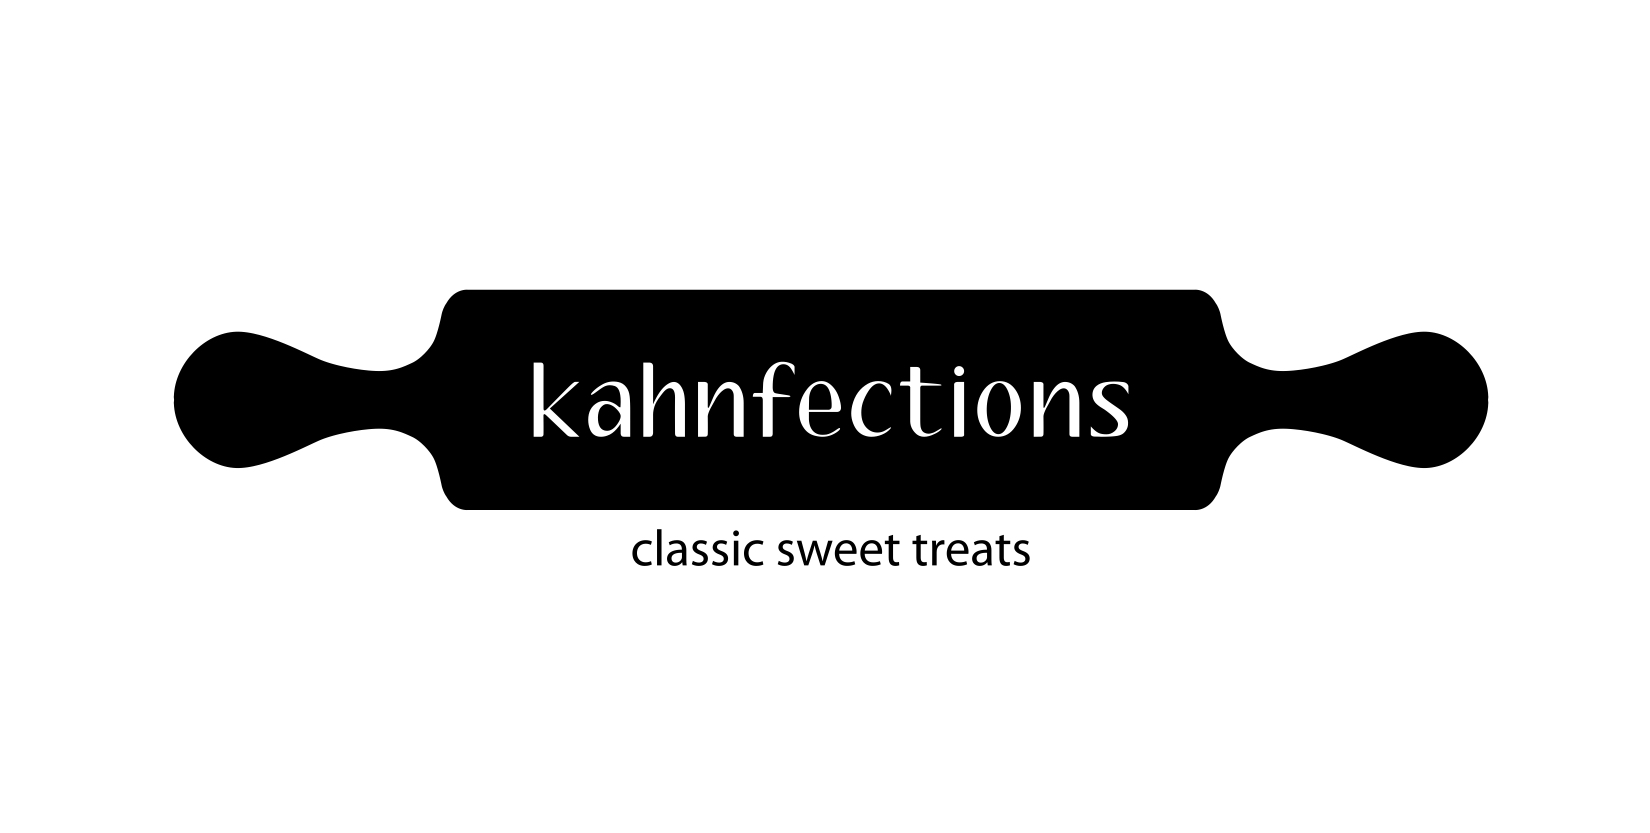 Kahnfections